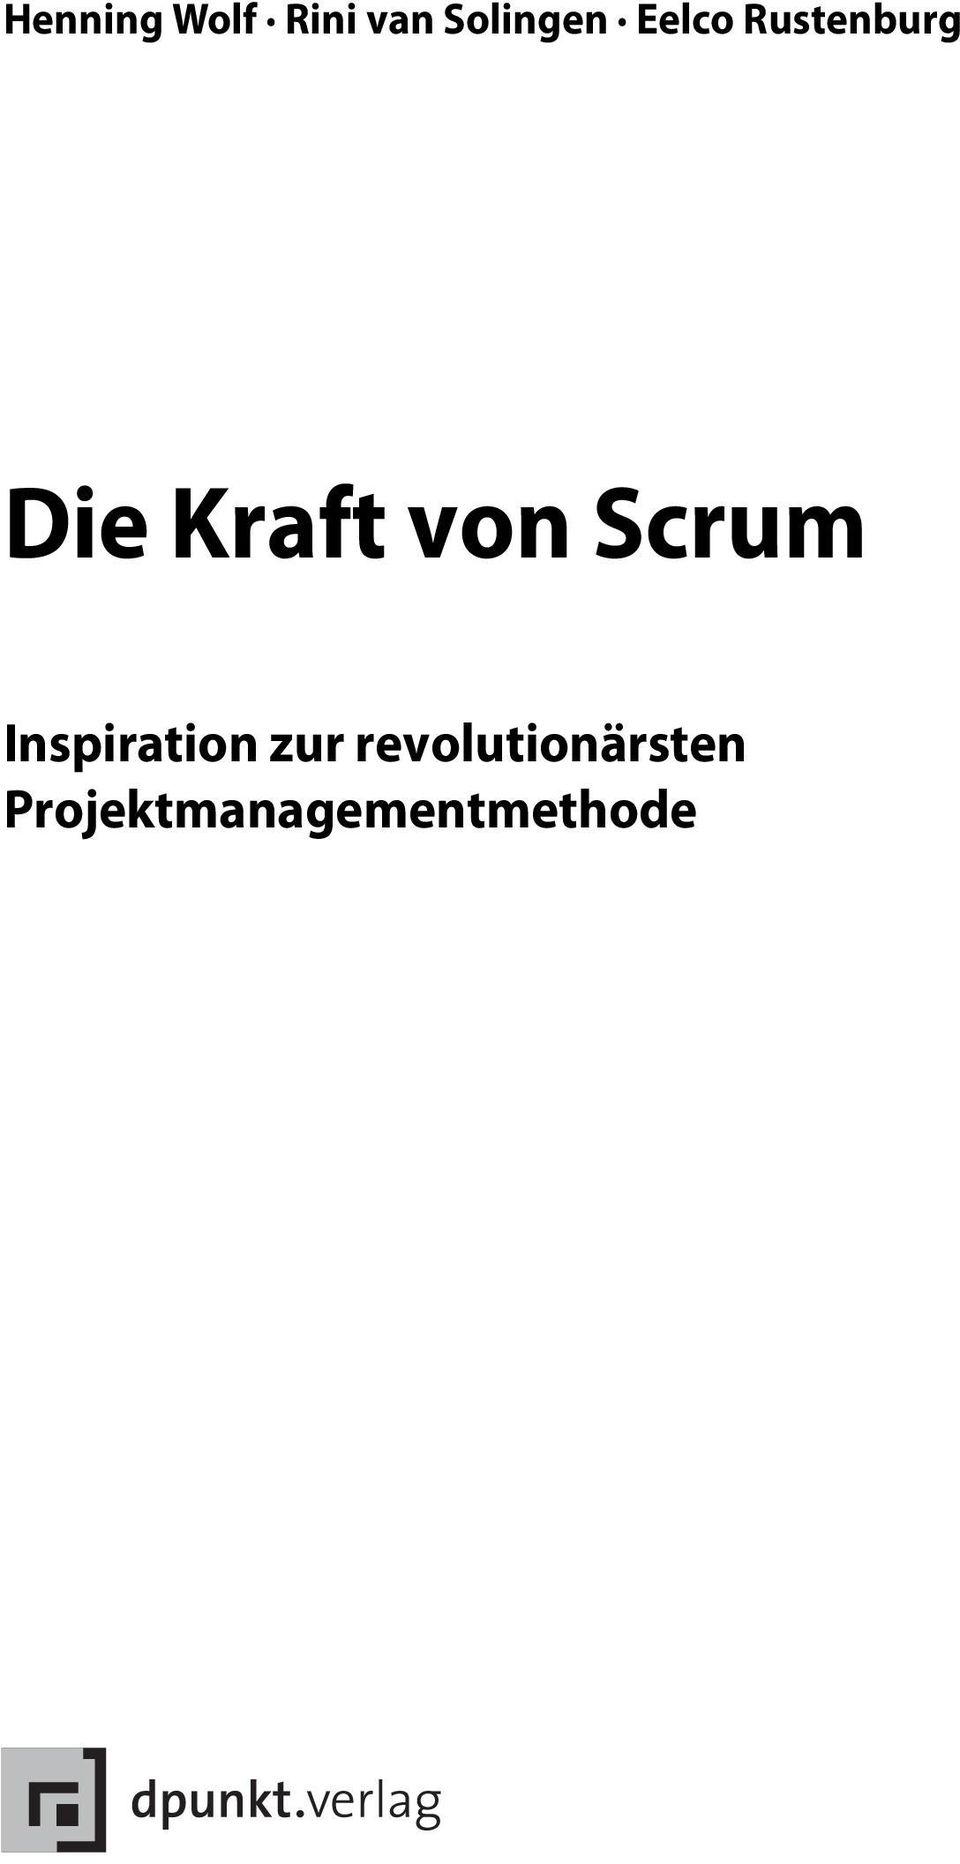 Scrum Inspiration zur